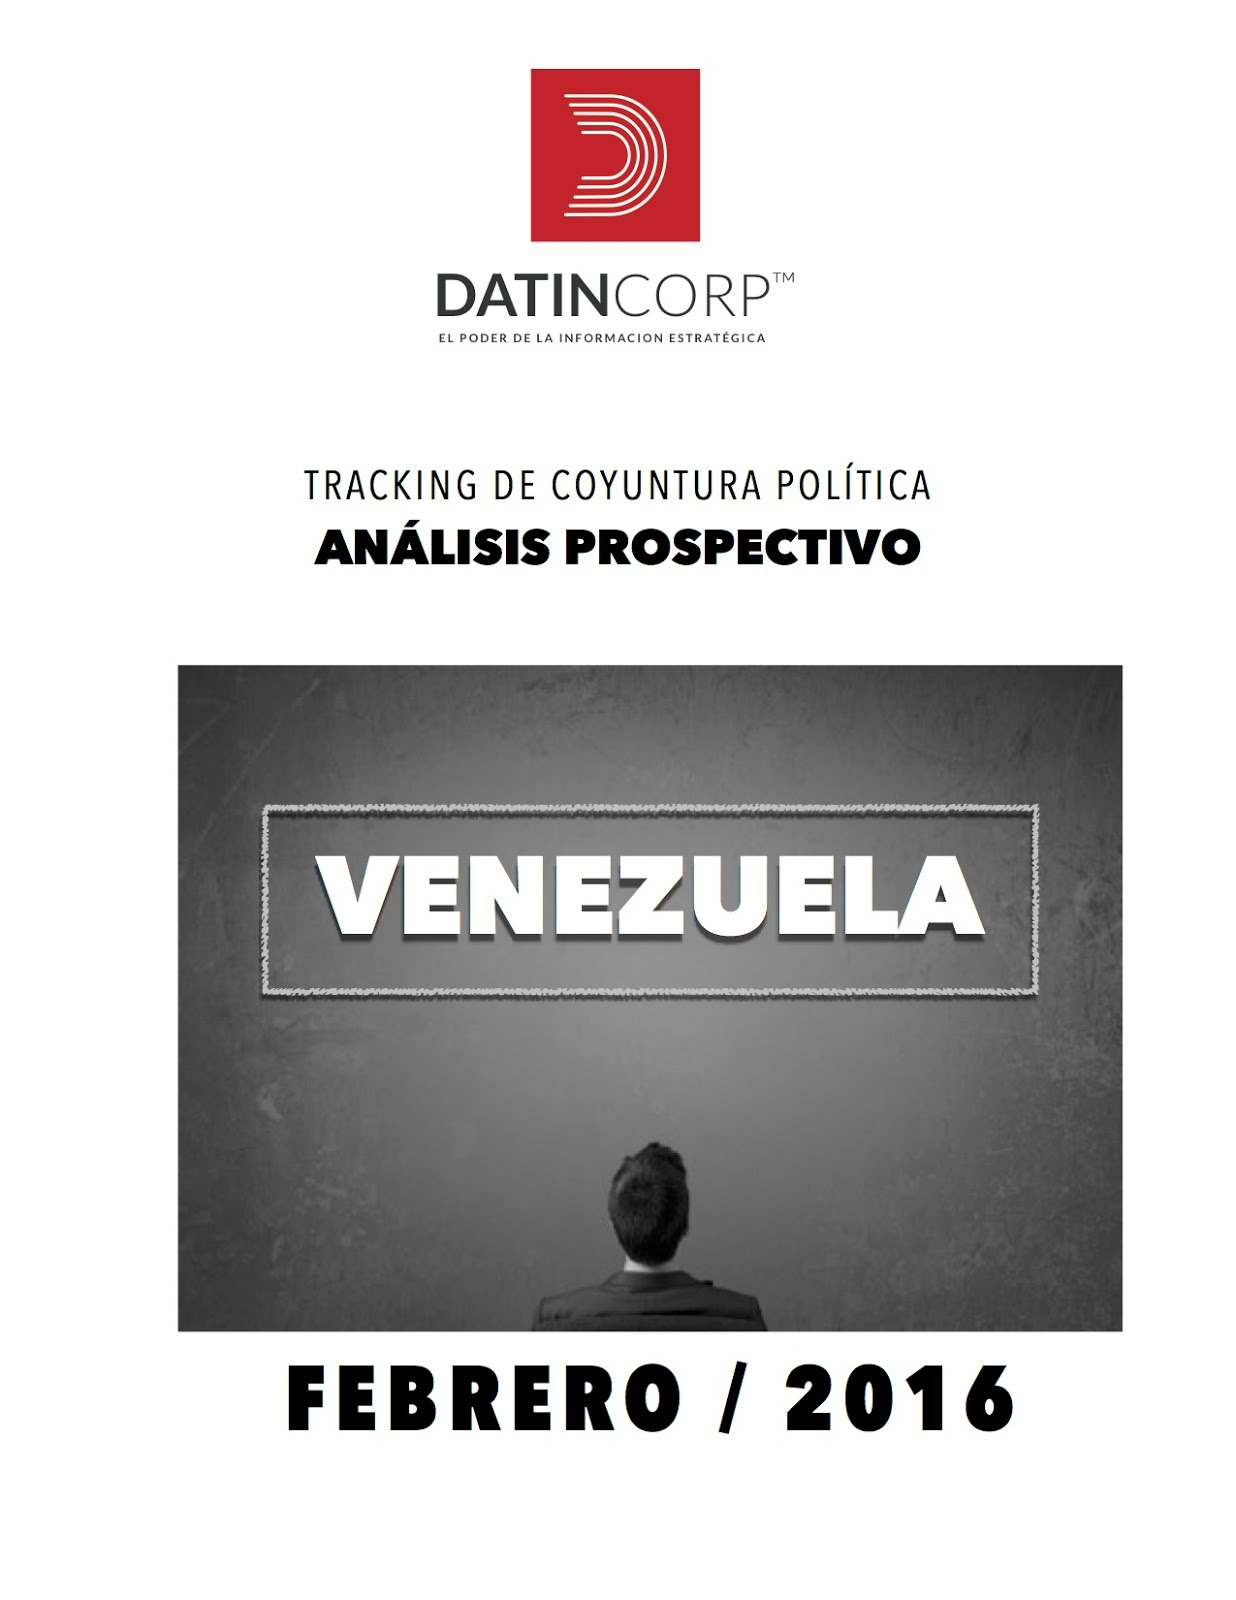 Tracking de Coyuntura Política DatinCorp